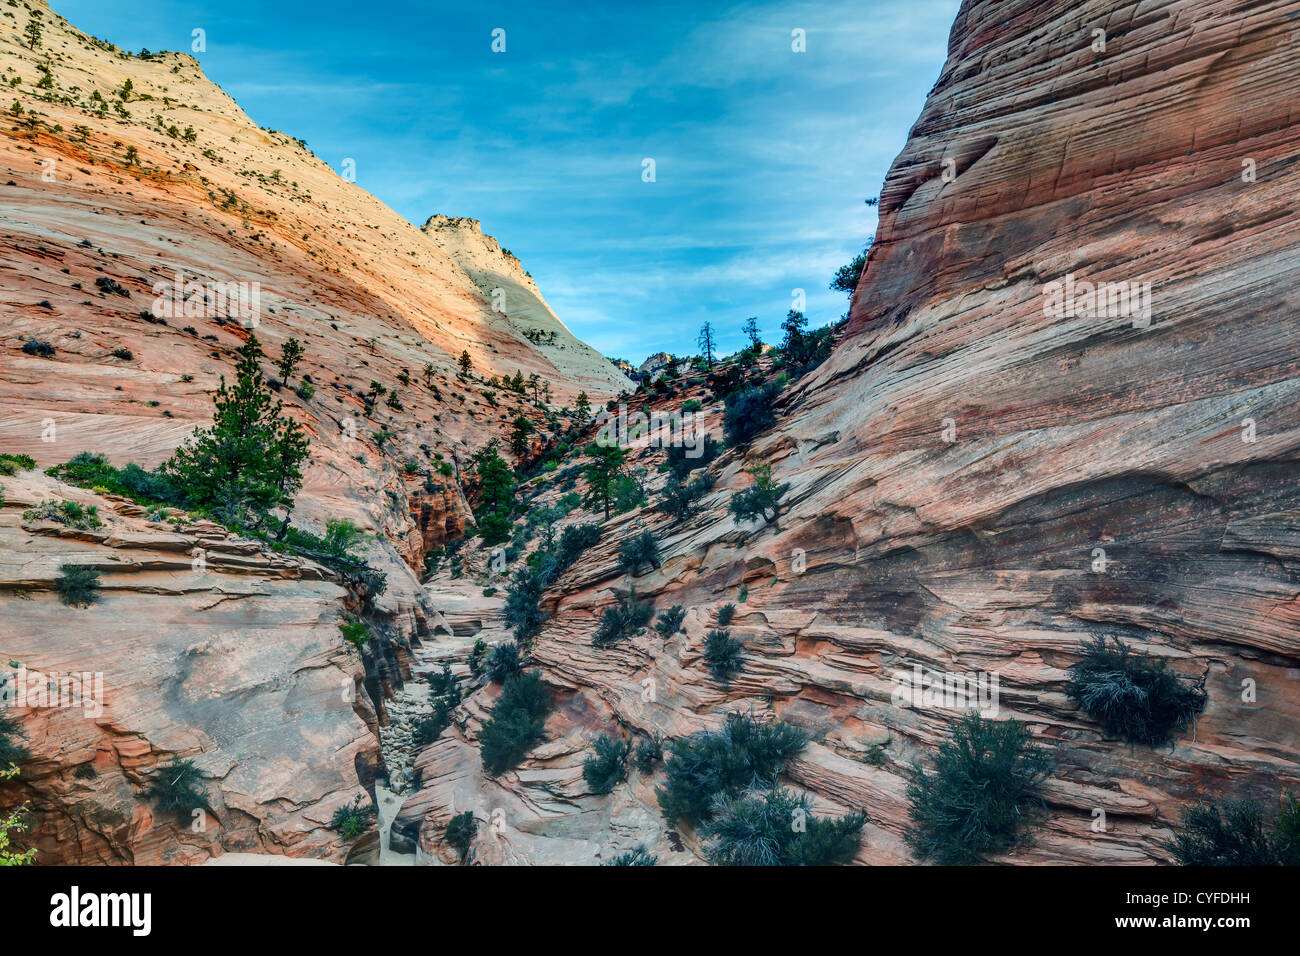 Zion National Park is located in the Southwestern United States, near Springdale, Utah - Stock Image